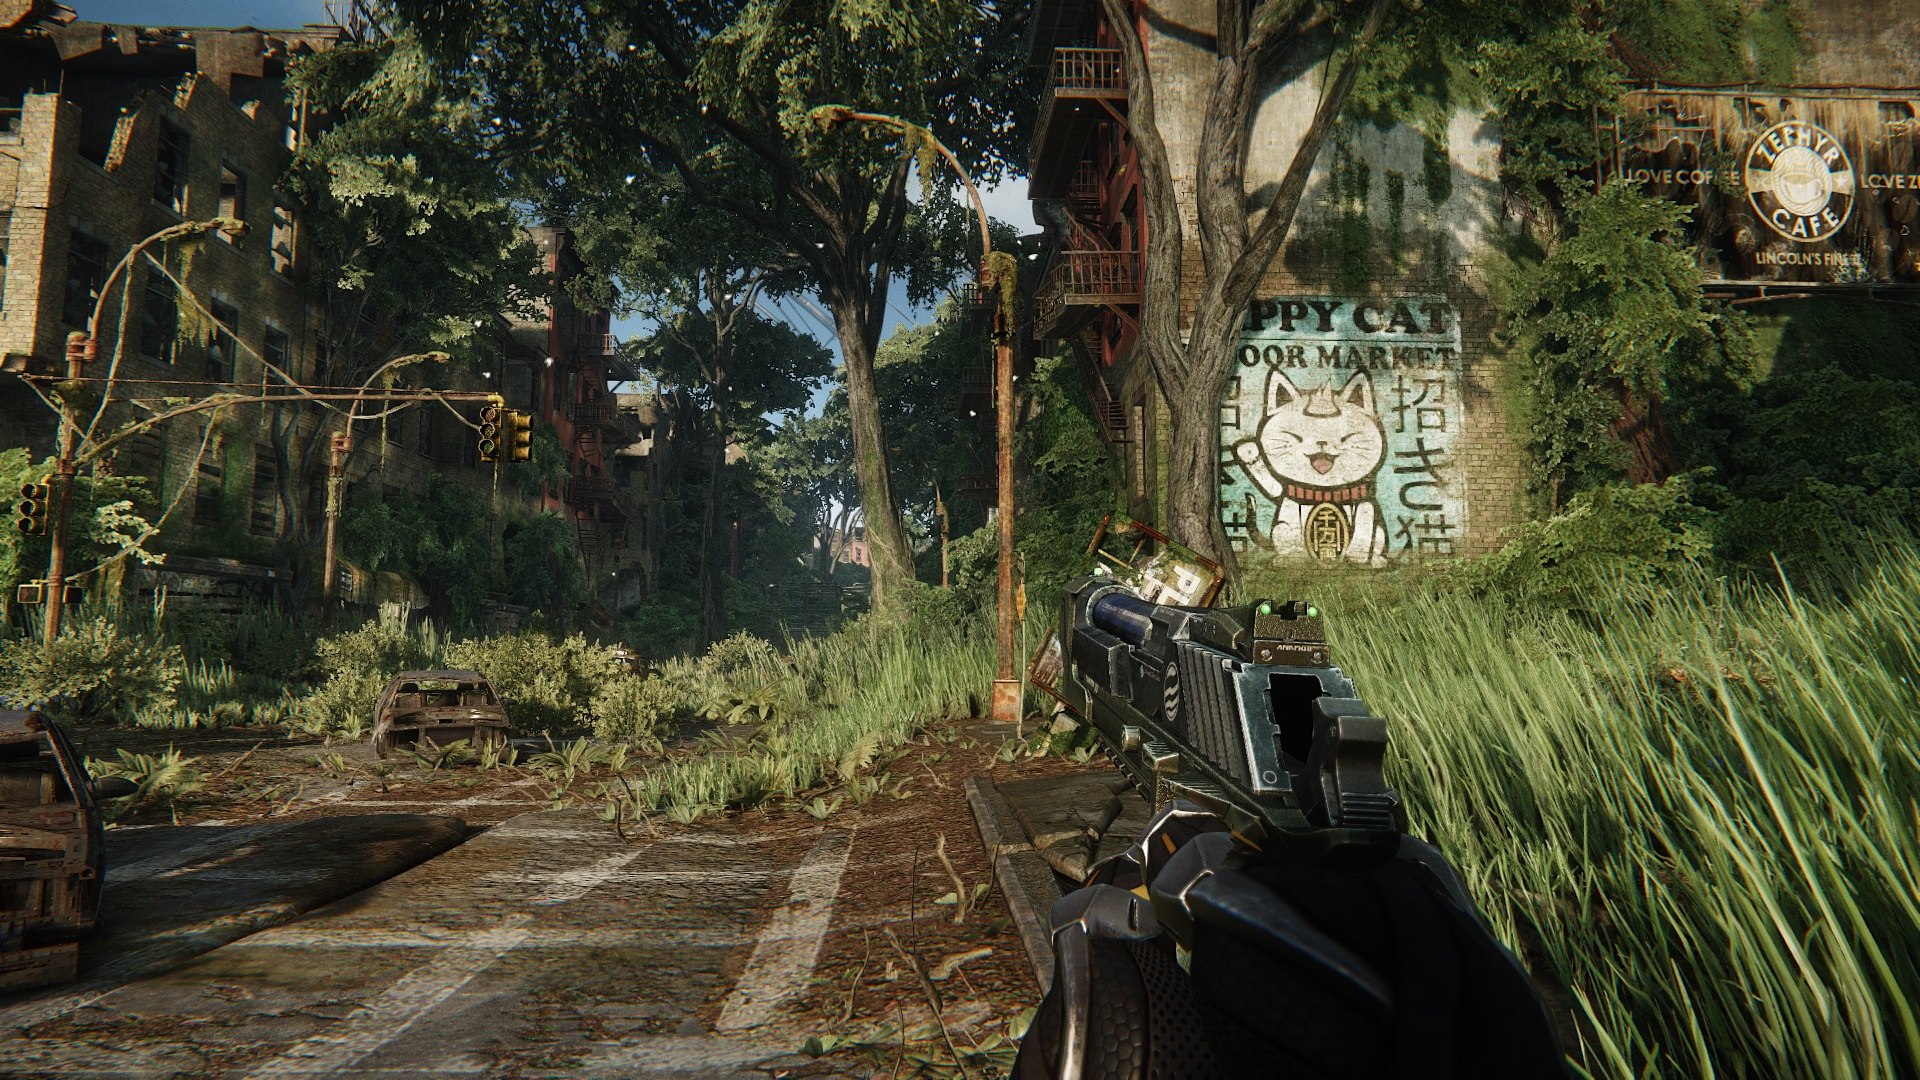 crysis 4 wallpaper hd-#33